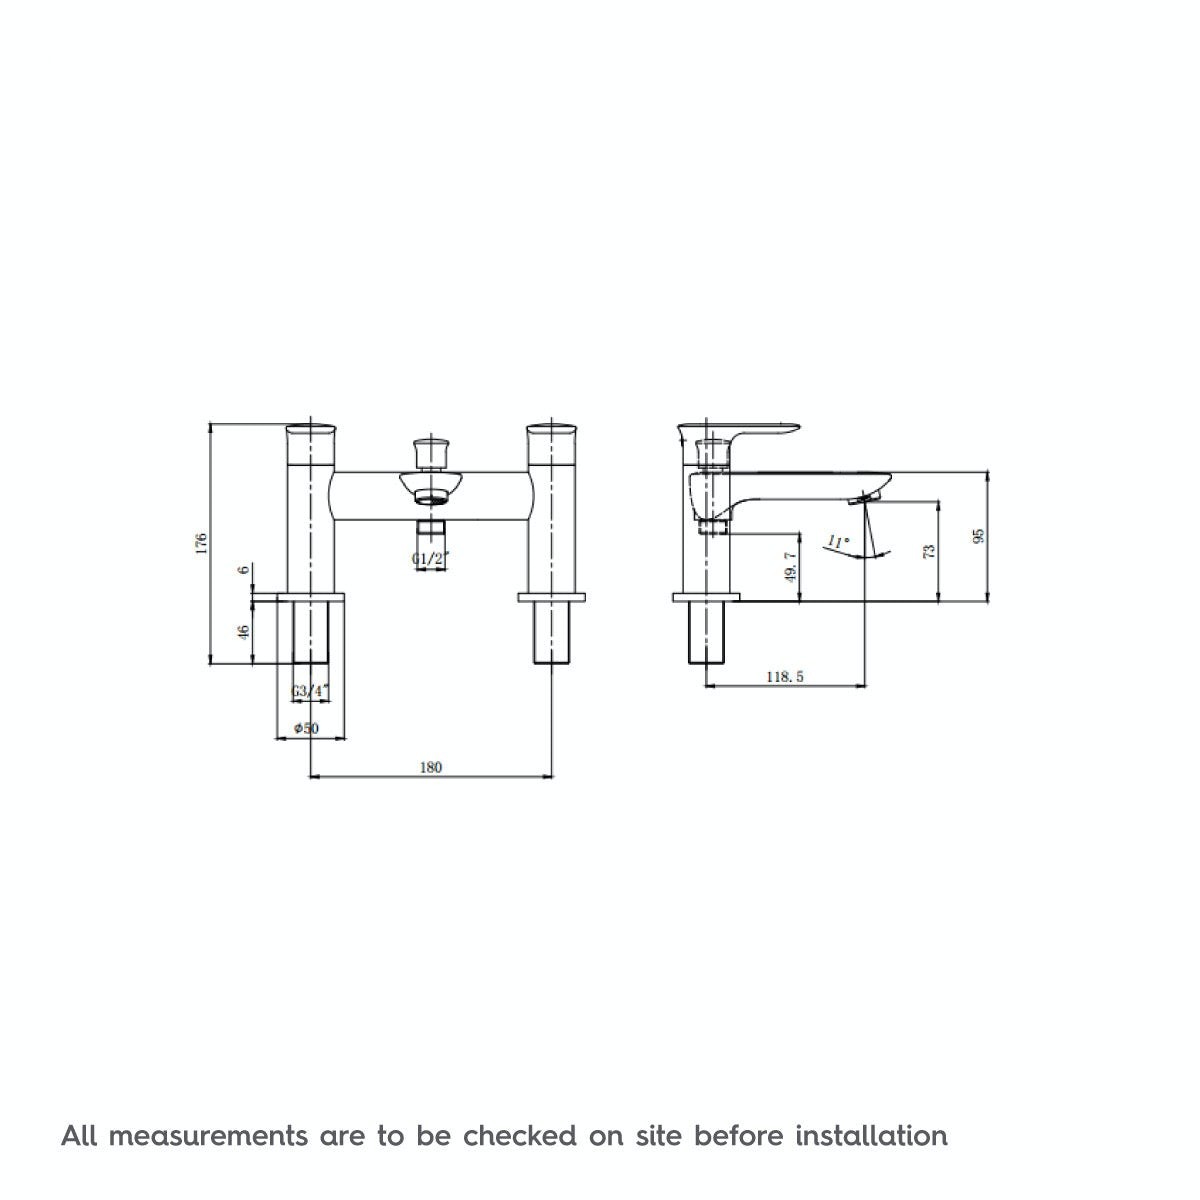 Dimensions for Orchard Cleanse bath shower mixer tap